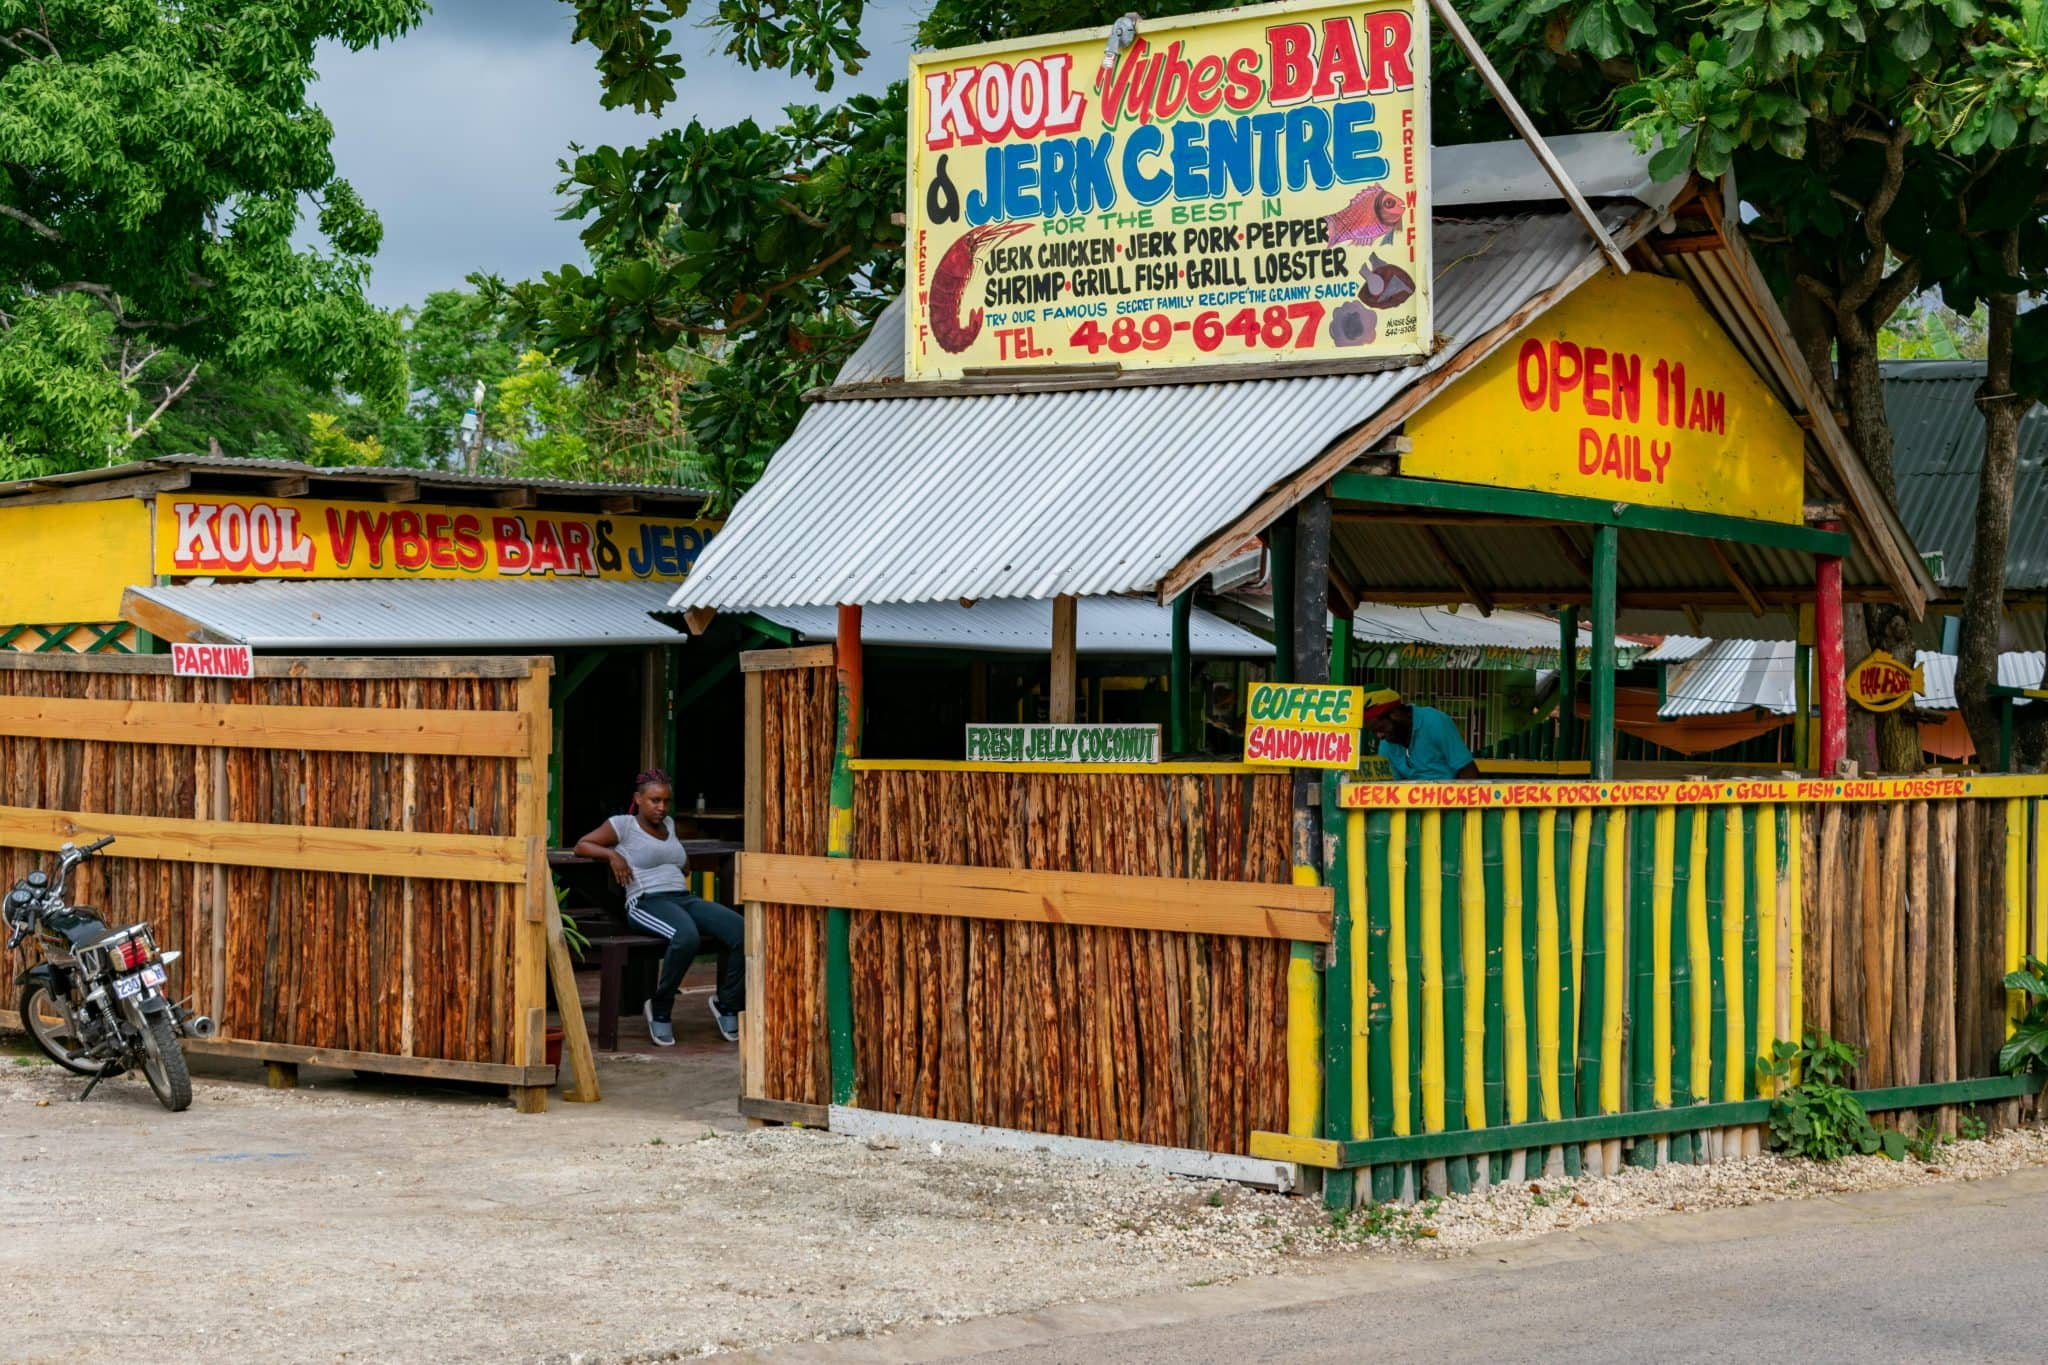 Kool Vybes Bar and Jerk Centre, Negril